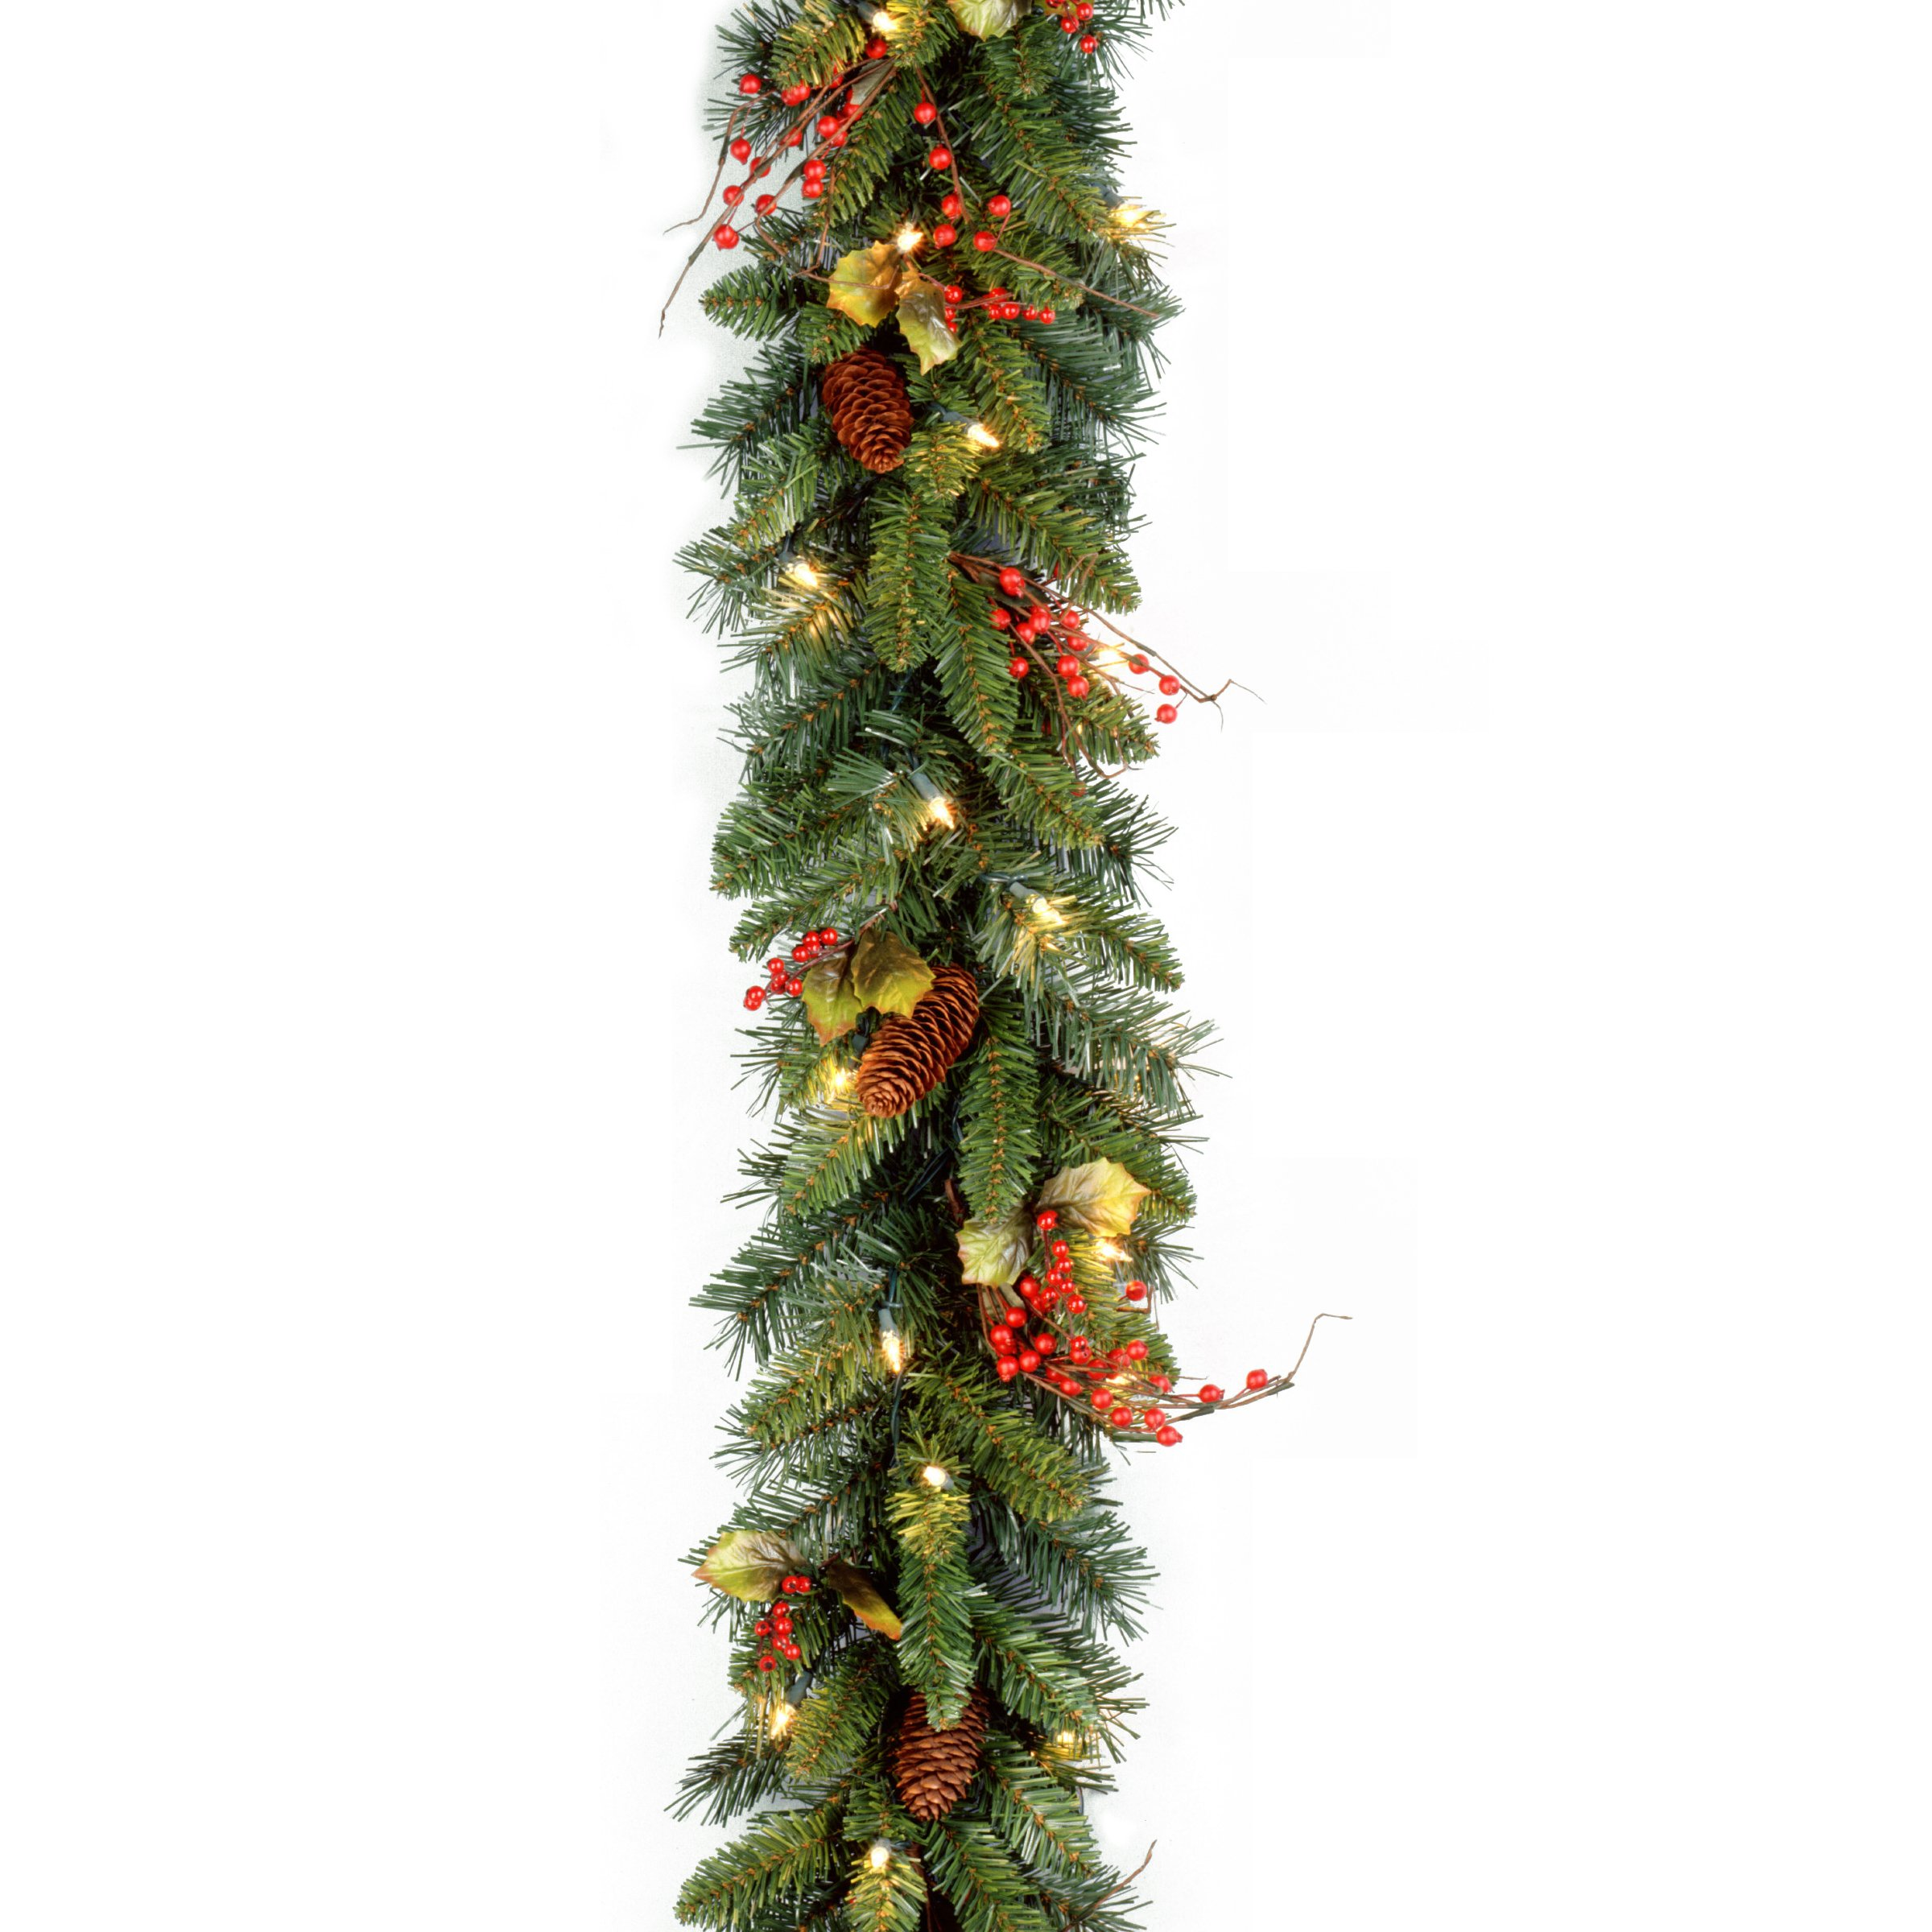 National Tree 9 Foot by 10 Inch Classical Collection Garland with Cones, Holly Leaves, Red Berries and 50 Clear Lights (CC1-301-9A-1)